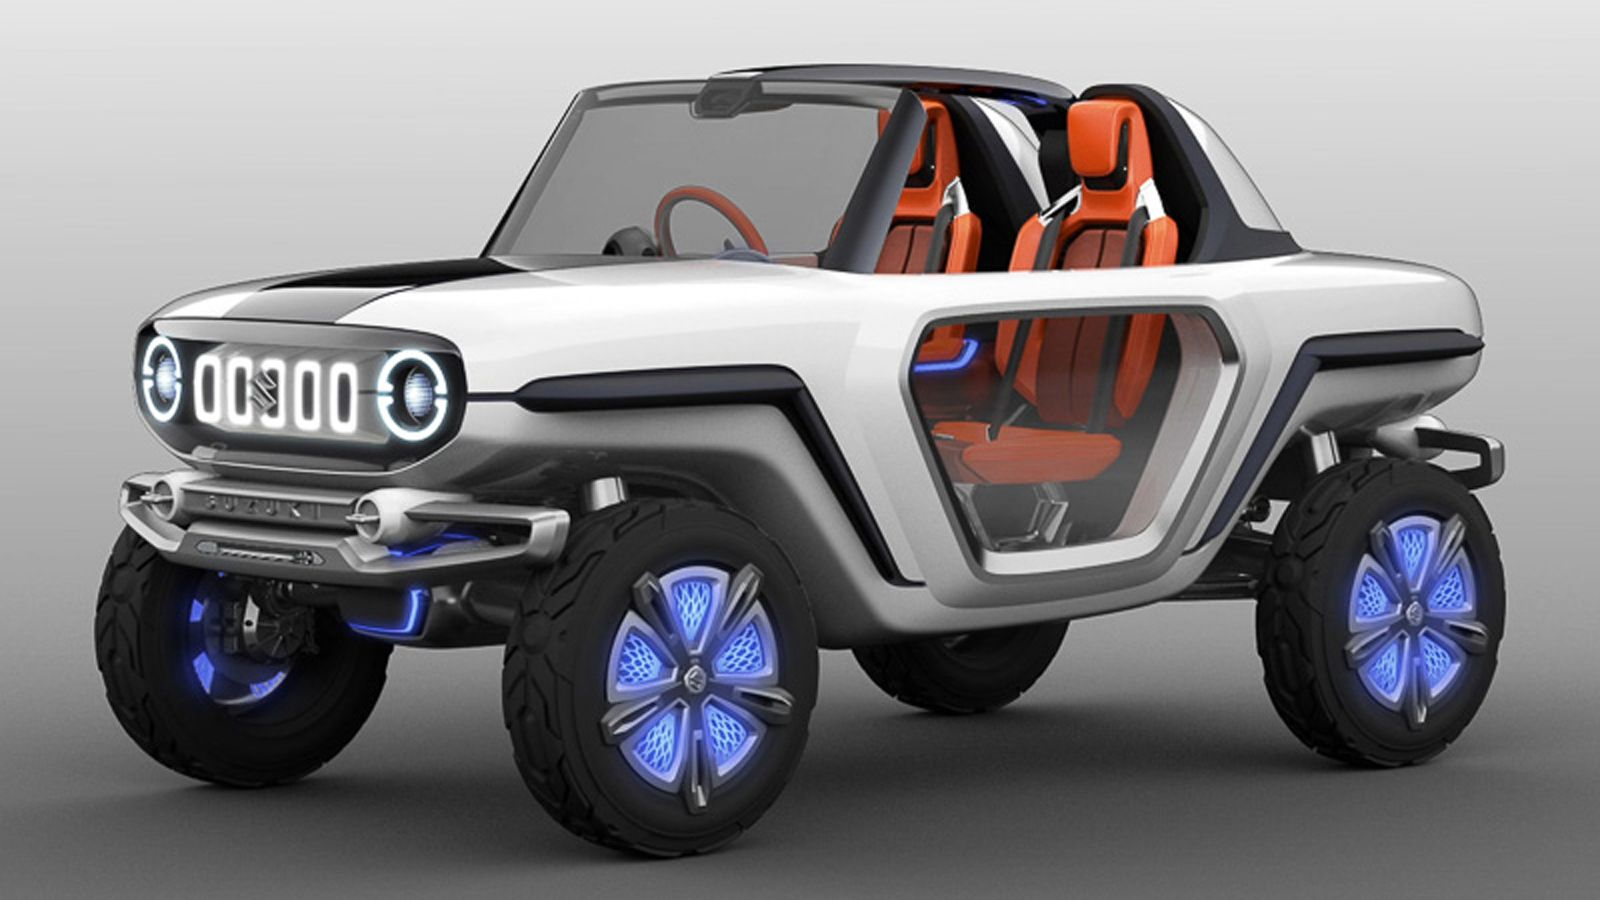 Suzuki e-Survivor concept to make its debut in Tokyo